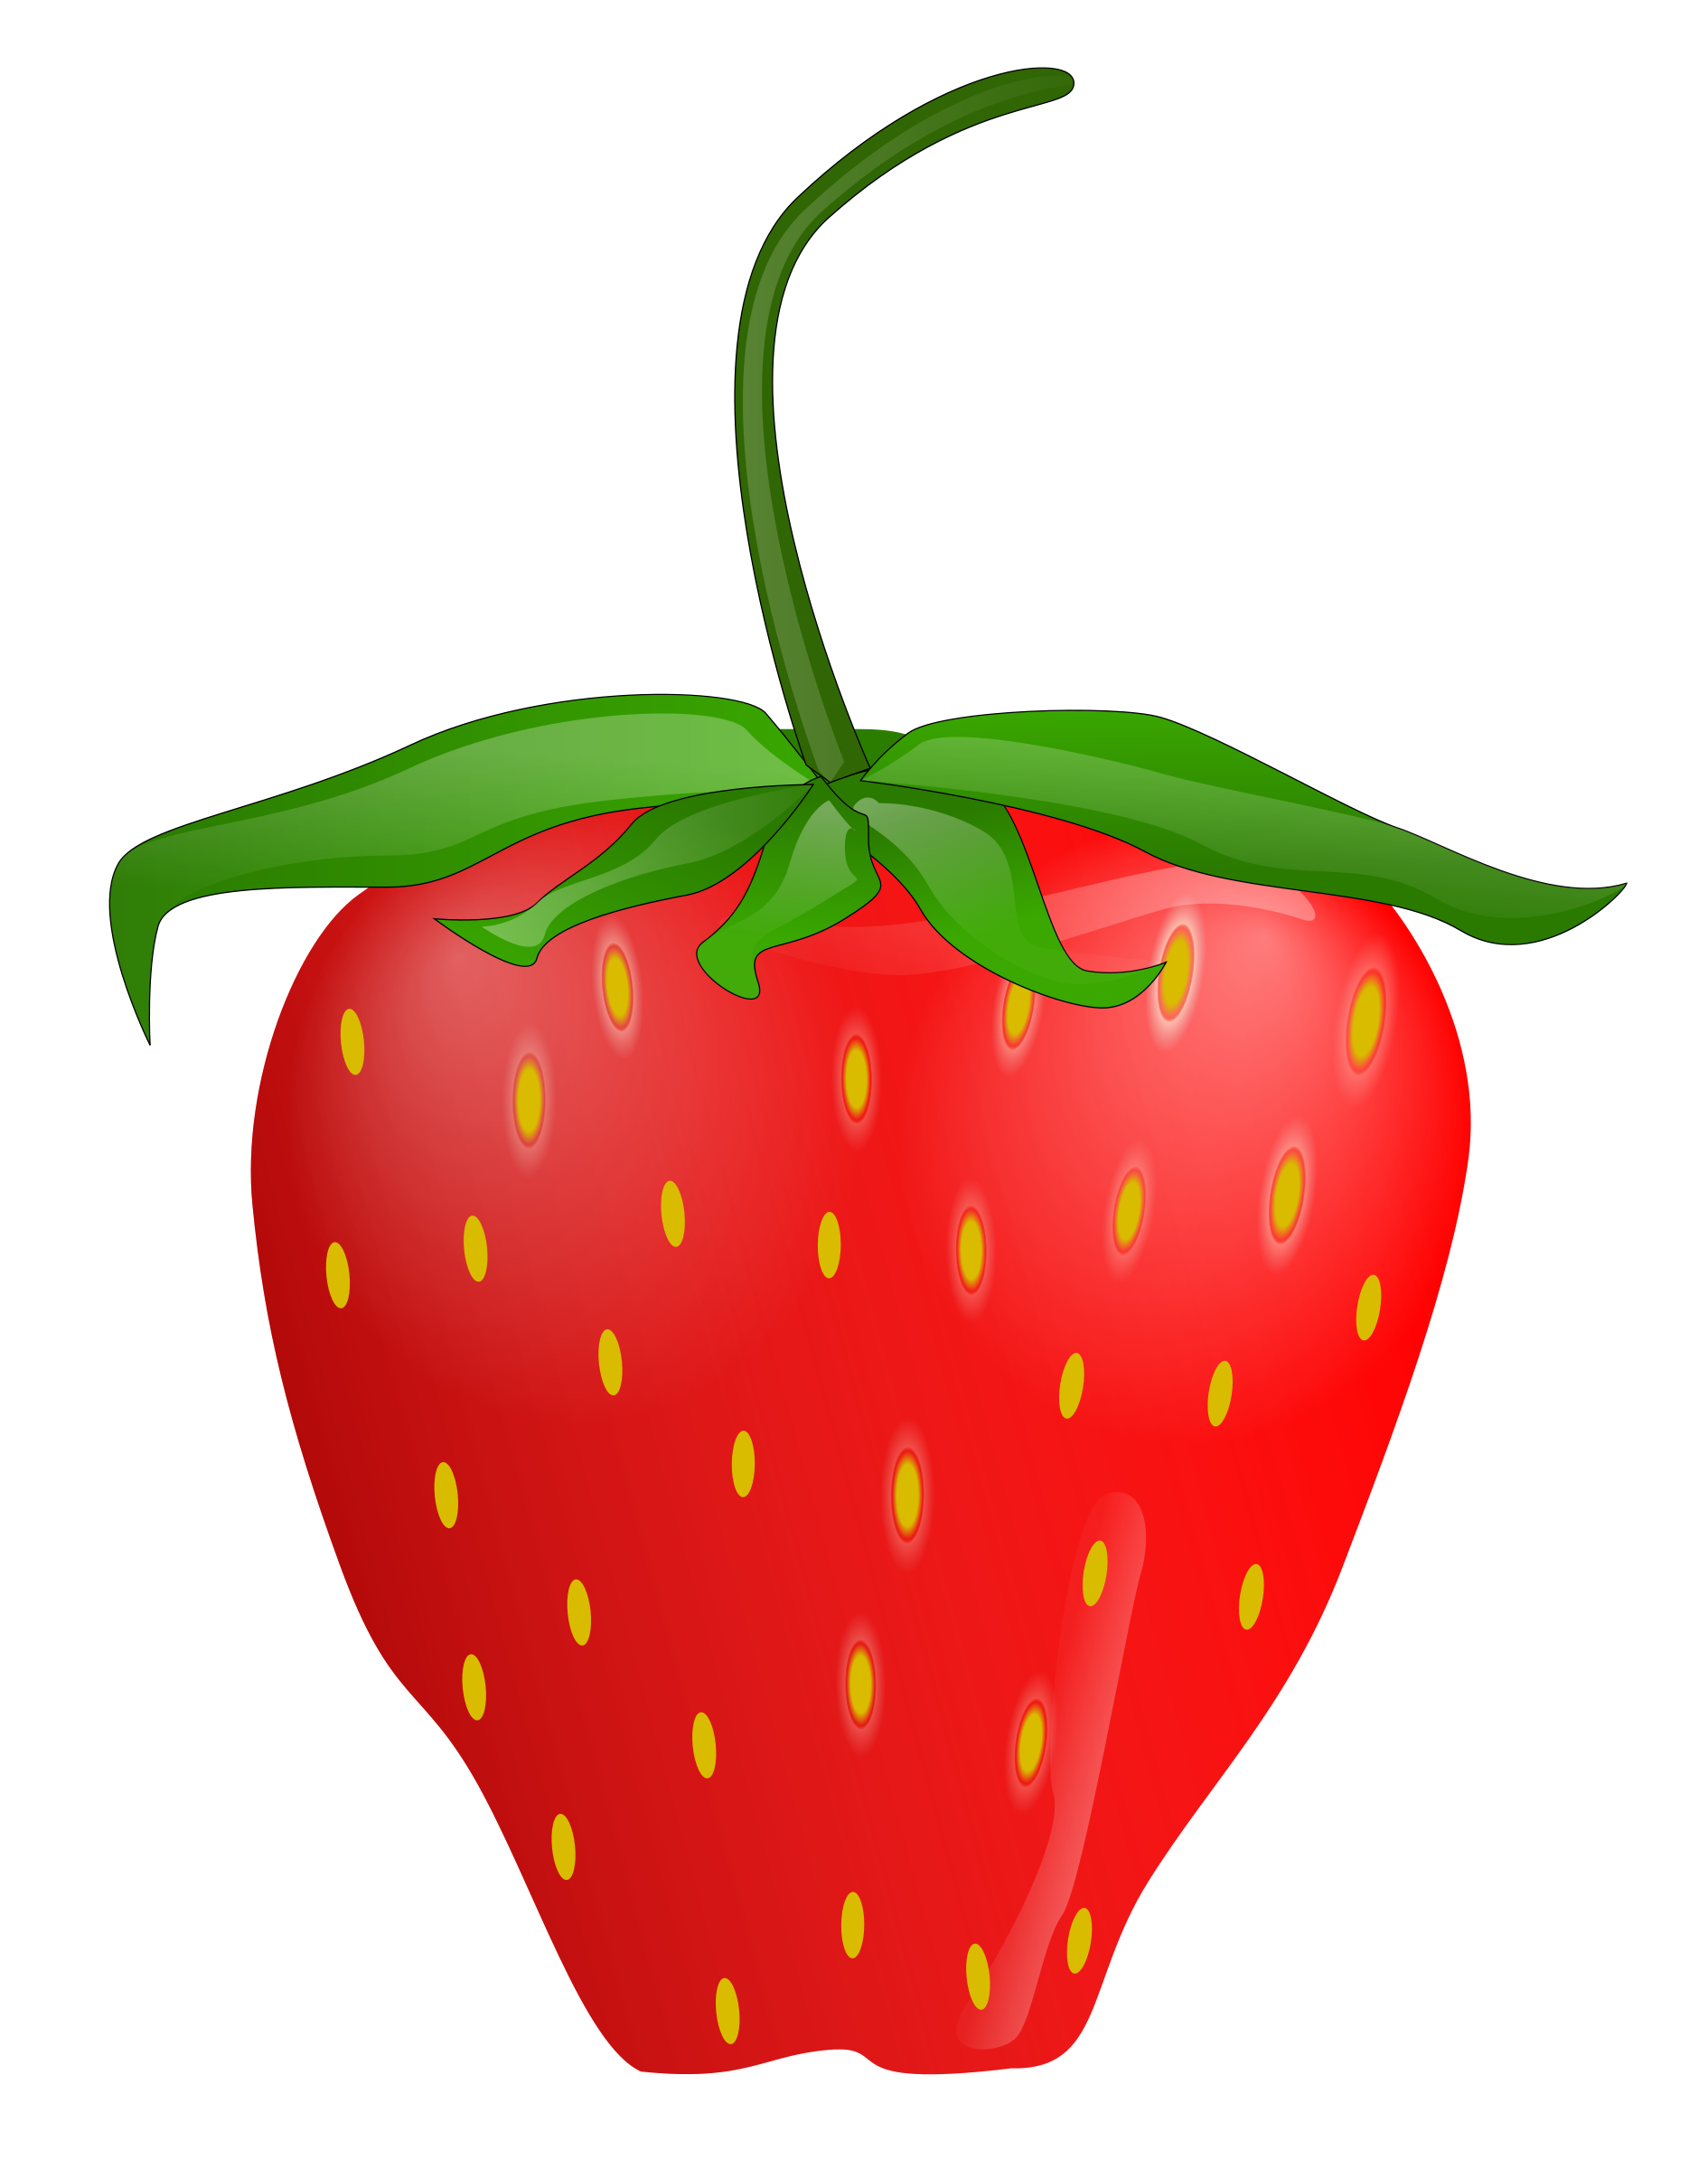 Yummy Strawberry Clipart Clip art of Strawberry Clipart #2026.